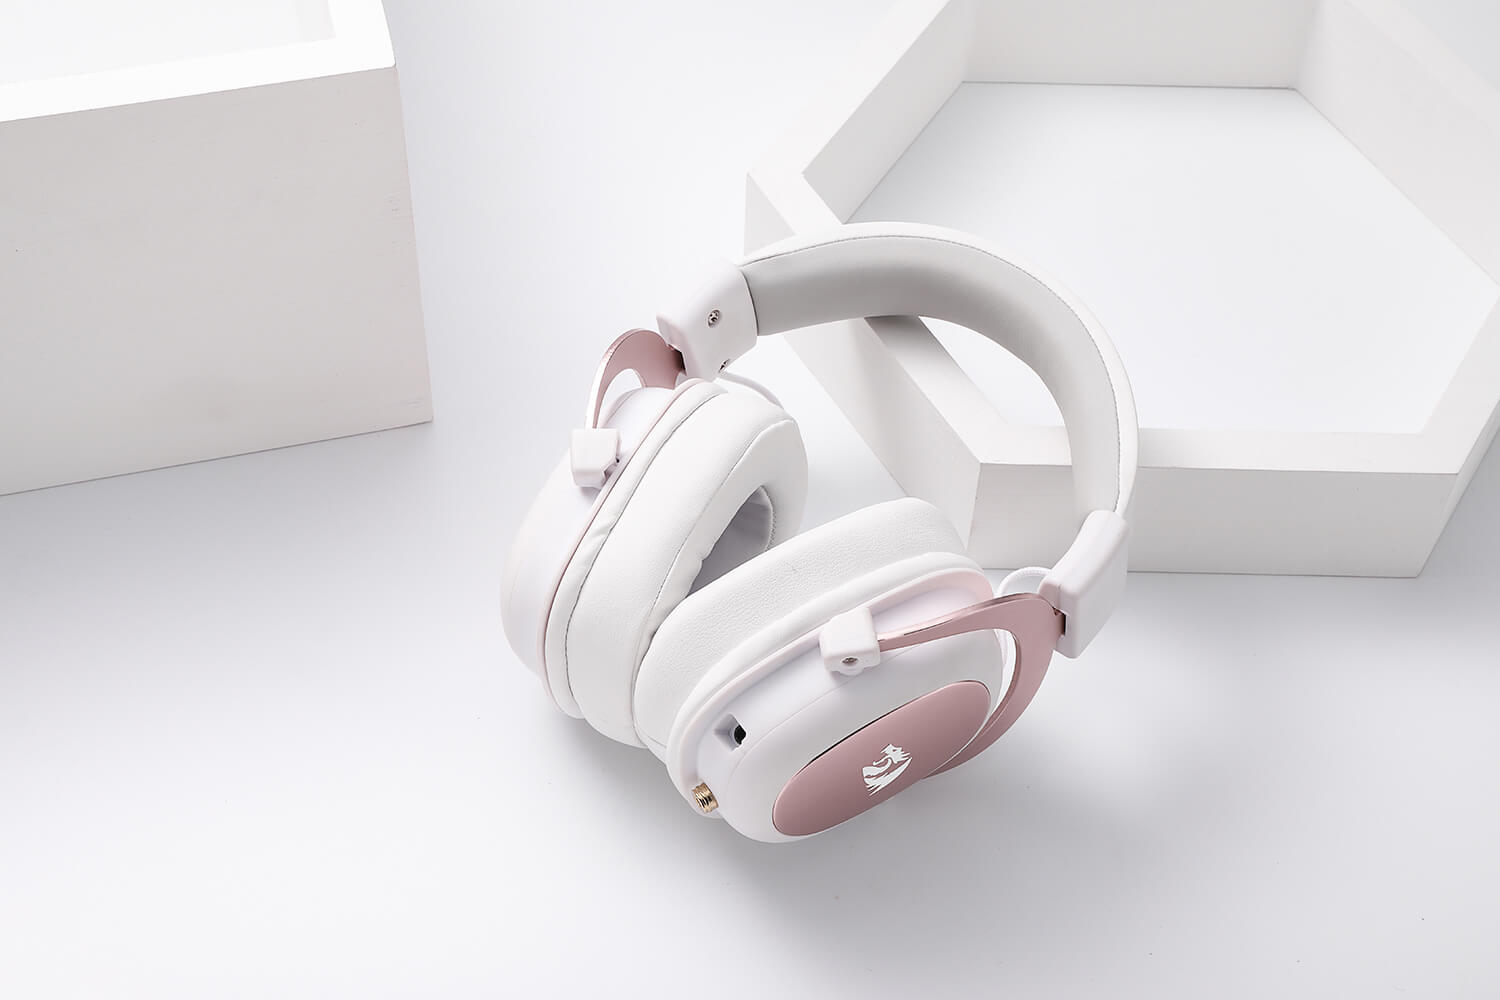 redragon white and pink gaming headset 3